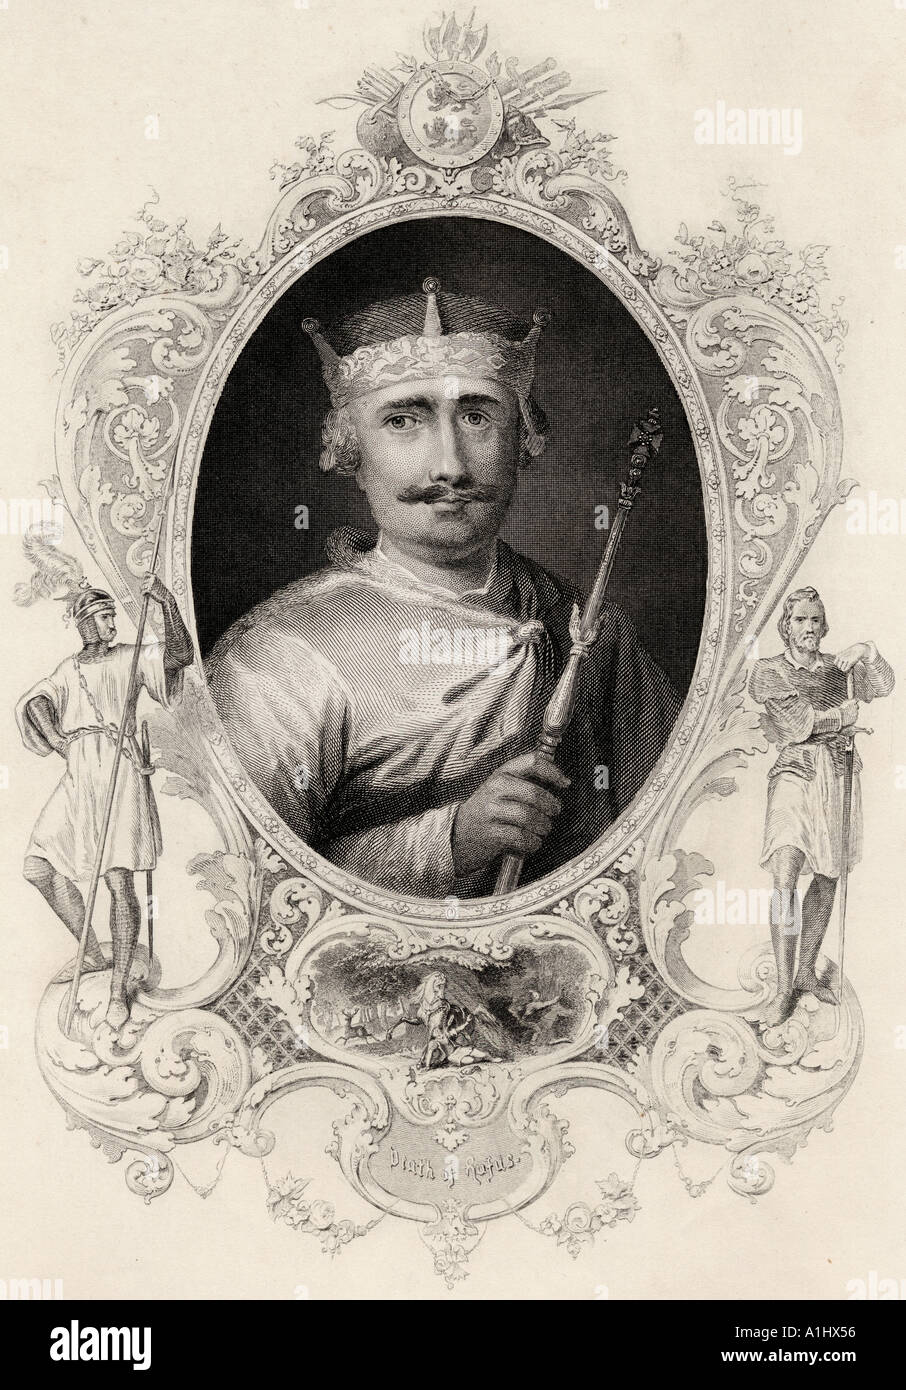 William II, Rufus the Red 1056 - 1100.  King of England.  From a 19th century print - Stock Image